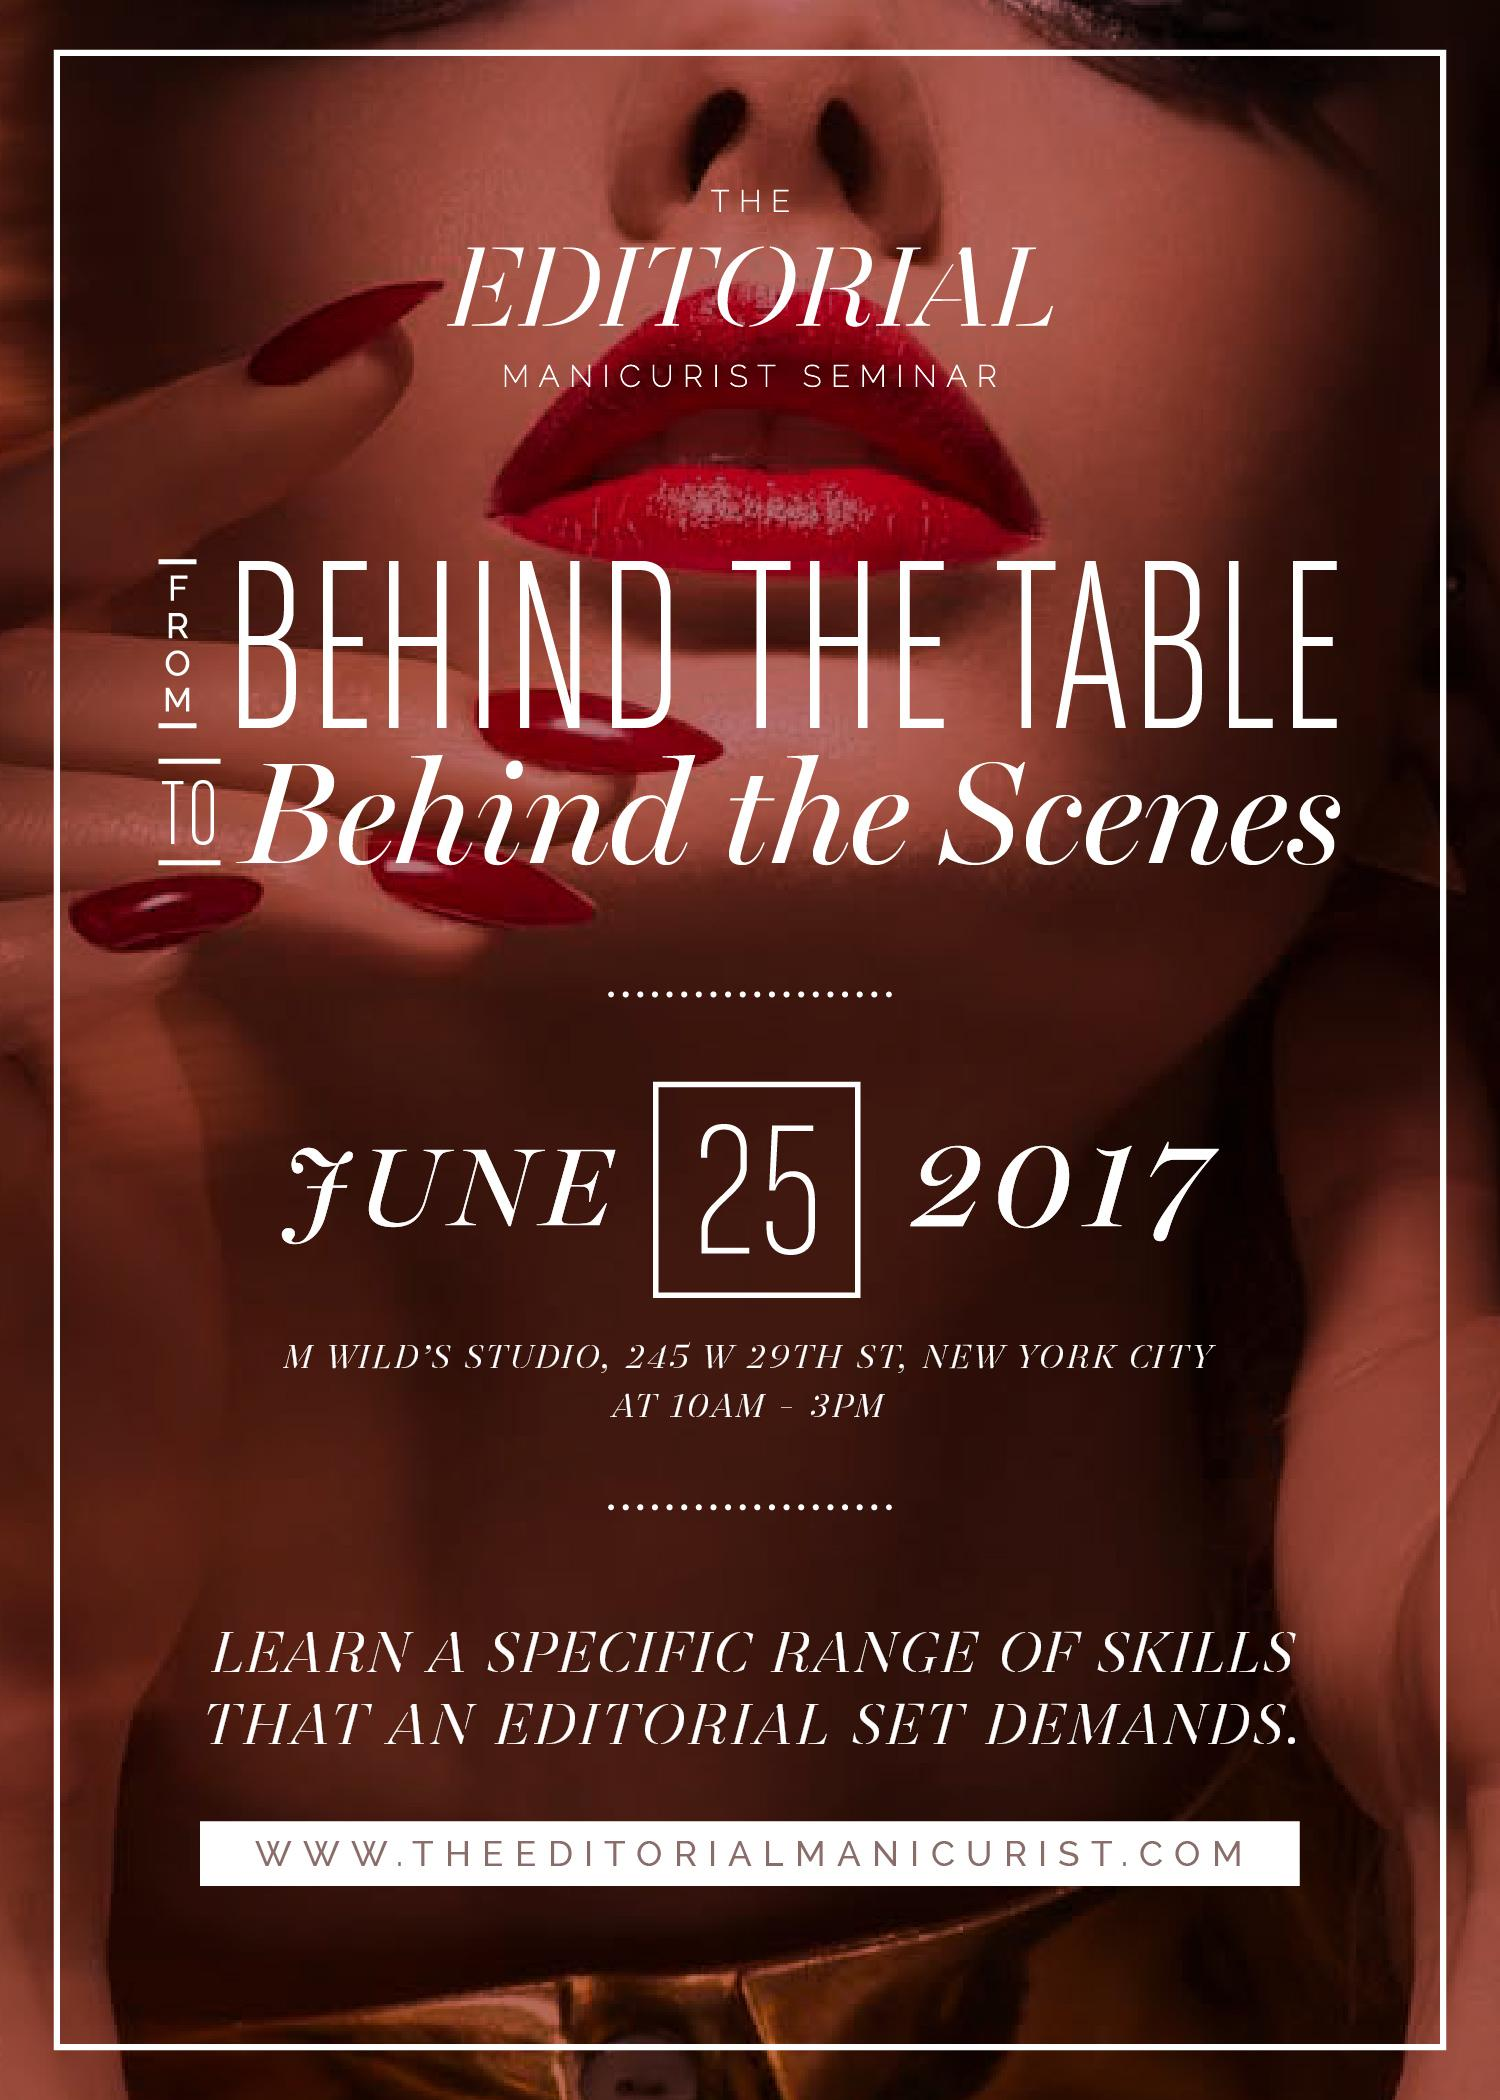 The Editorial Manicurist Seminar: From Behind